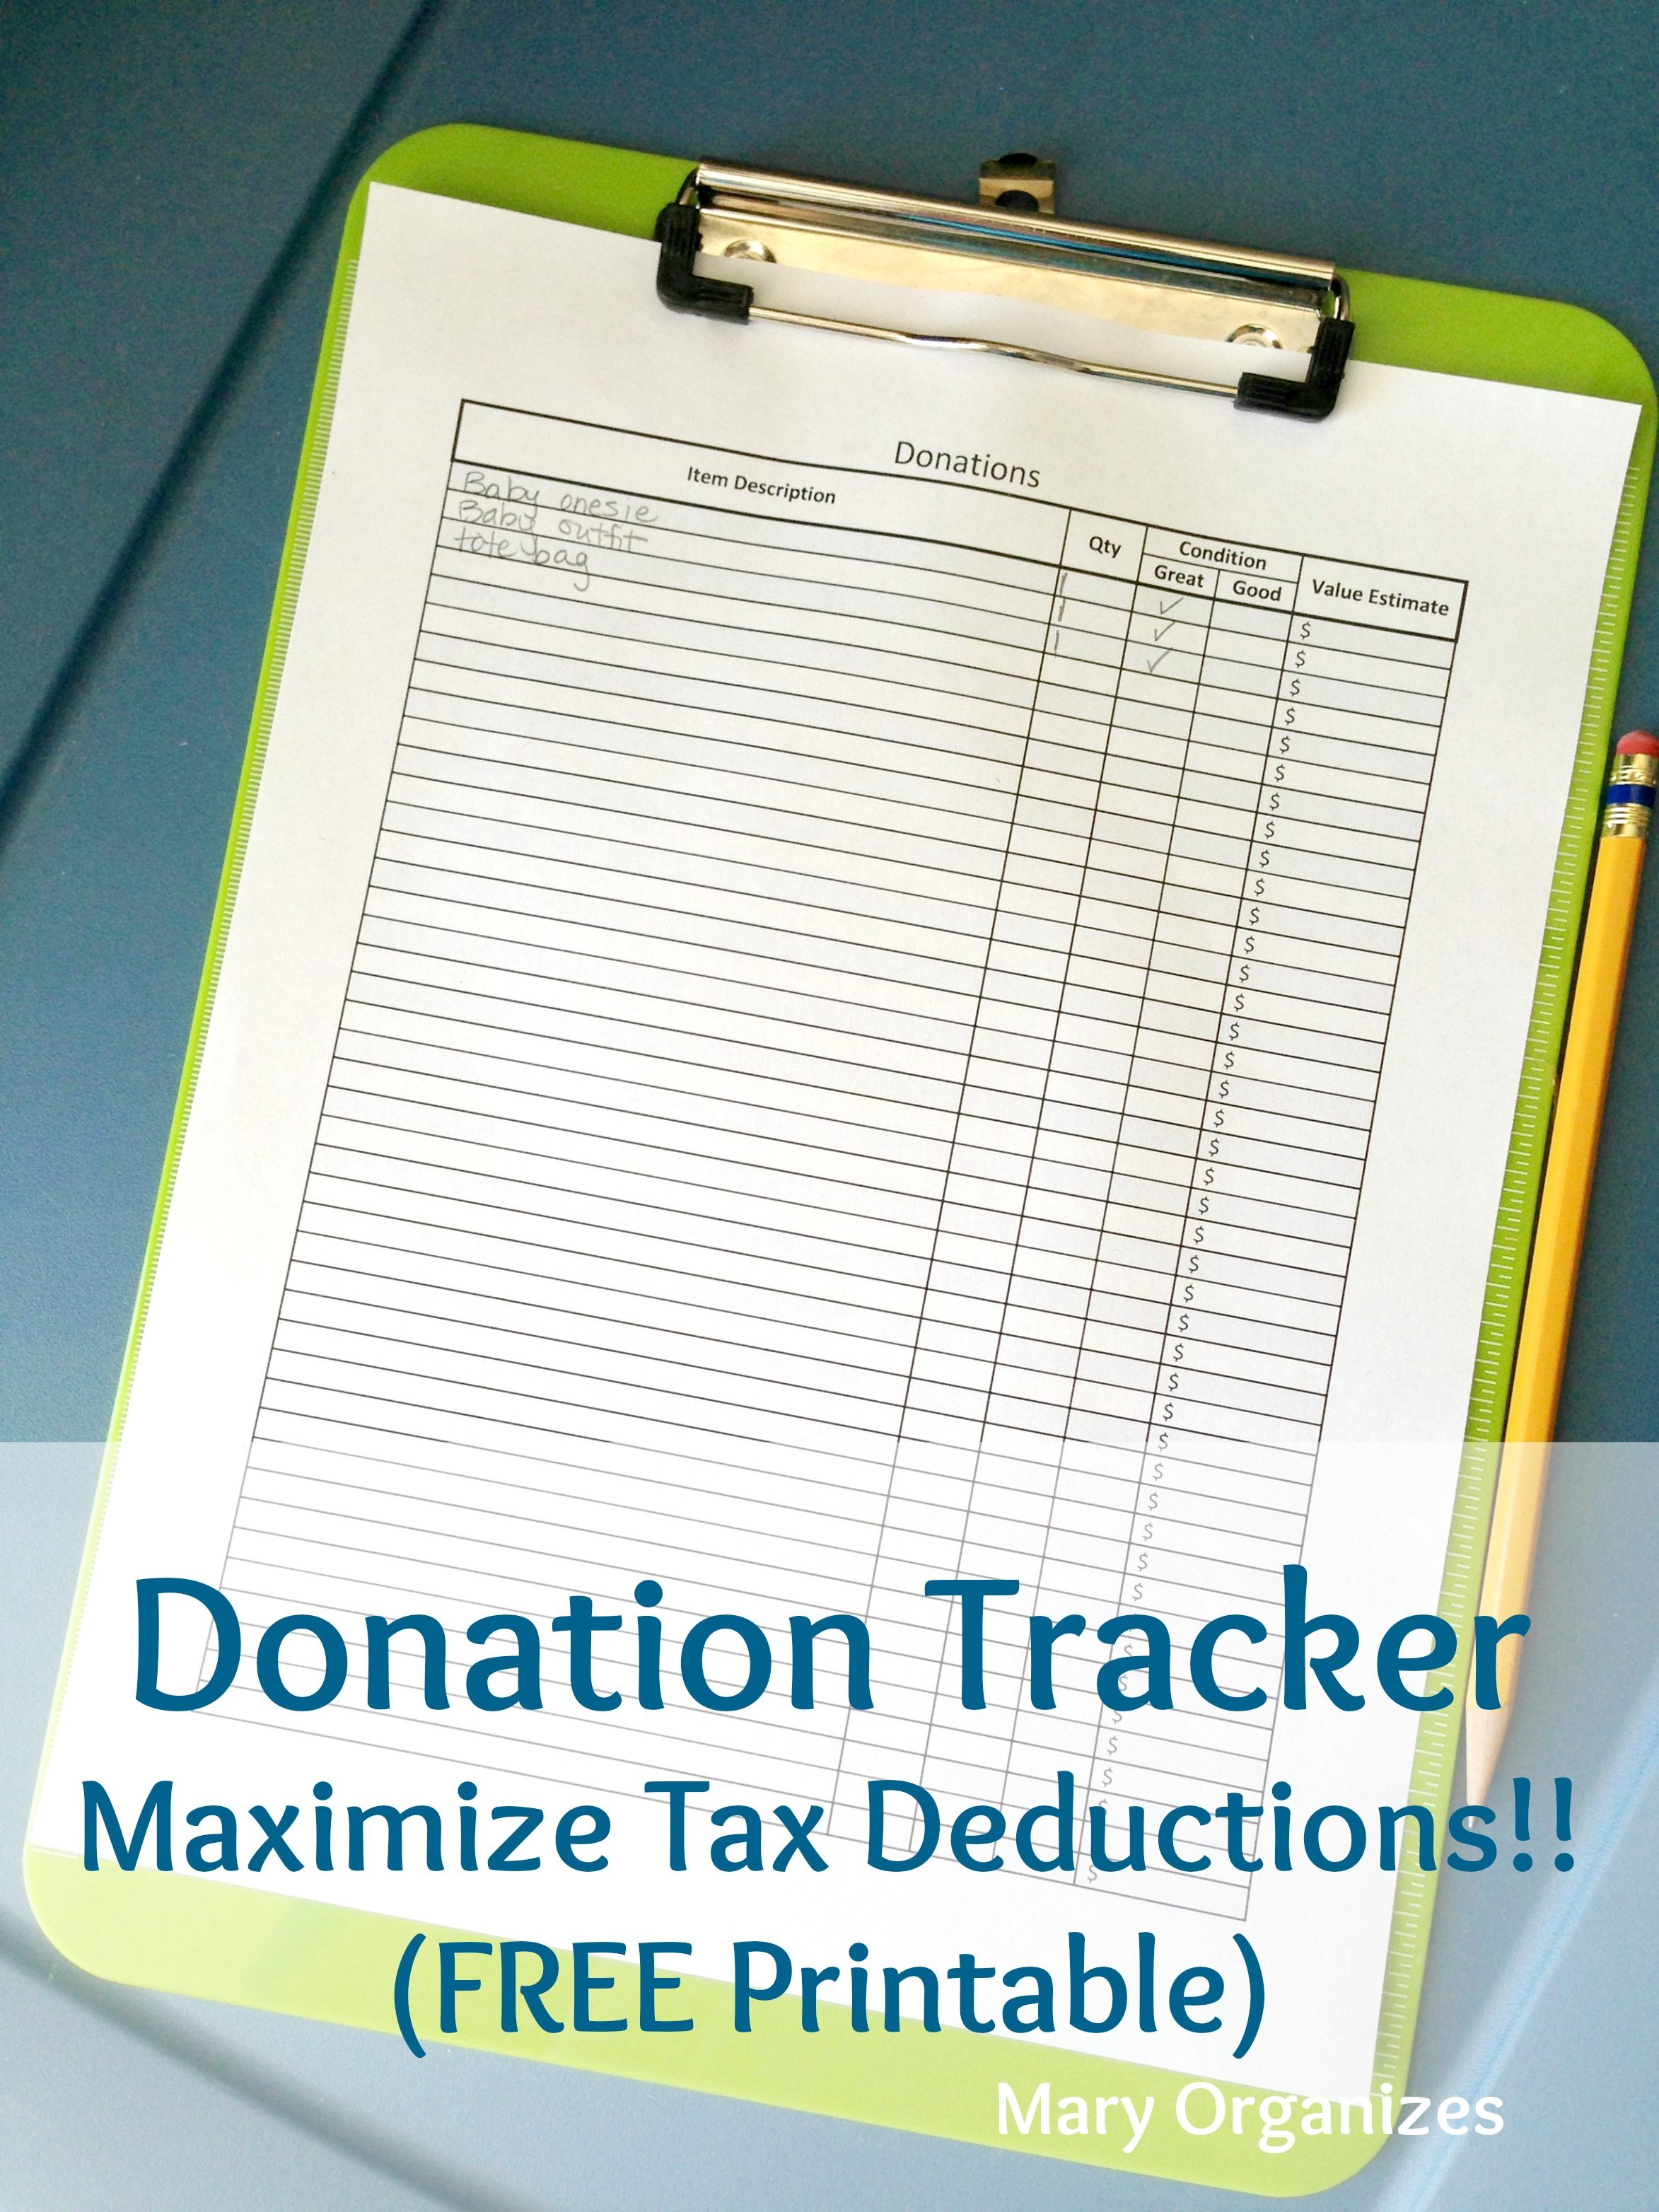 Eight Tips for Deducting Charitable Contributions